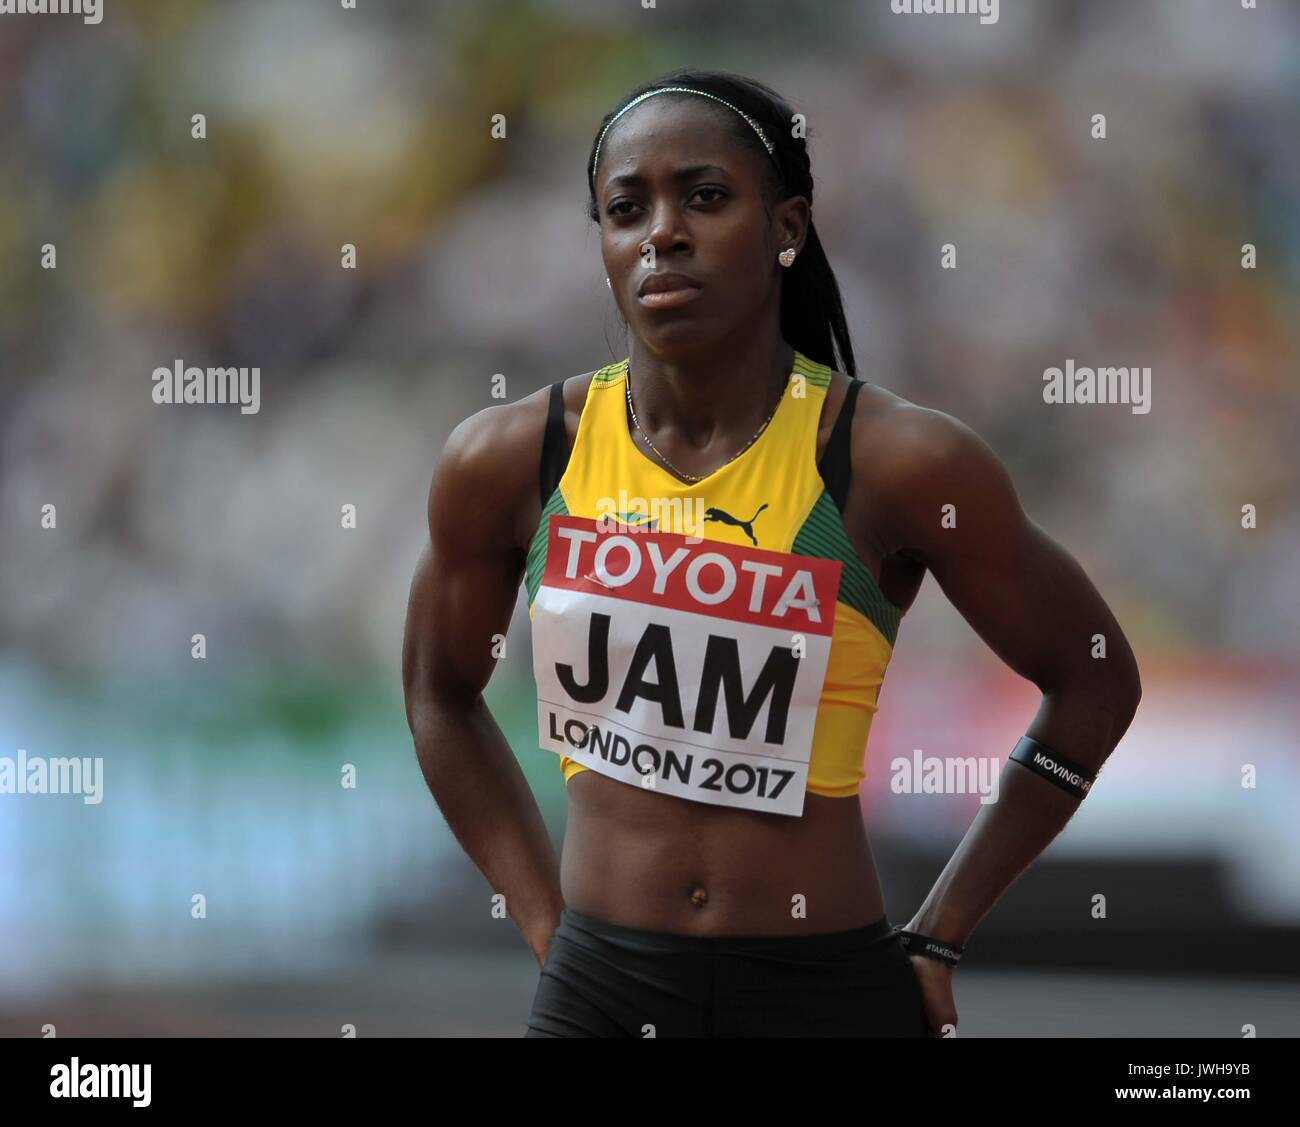 Lonodn, UK. 12 Aug, 2017. Sashalee Forbes (JAM) in the womens 4 x 100m relay. IAAF world athletics championships. London Olympic stadium. Queen Elizabeth Olympic park. Stratford. London. UK. 12/08/2017. Credit: Sport In Pictures/Alamy Live News - Stock Image